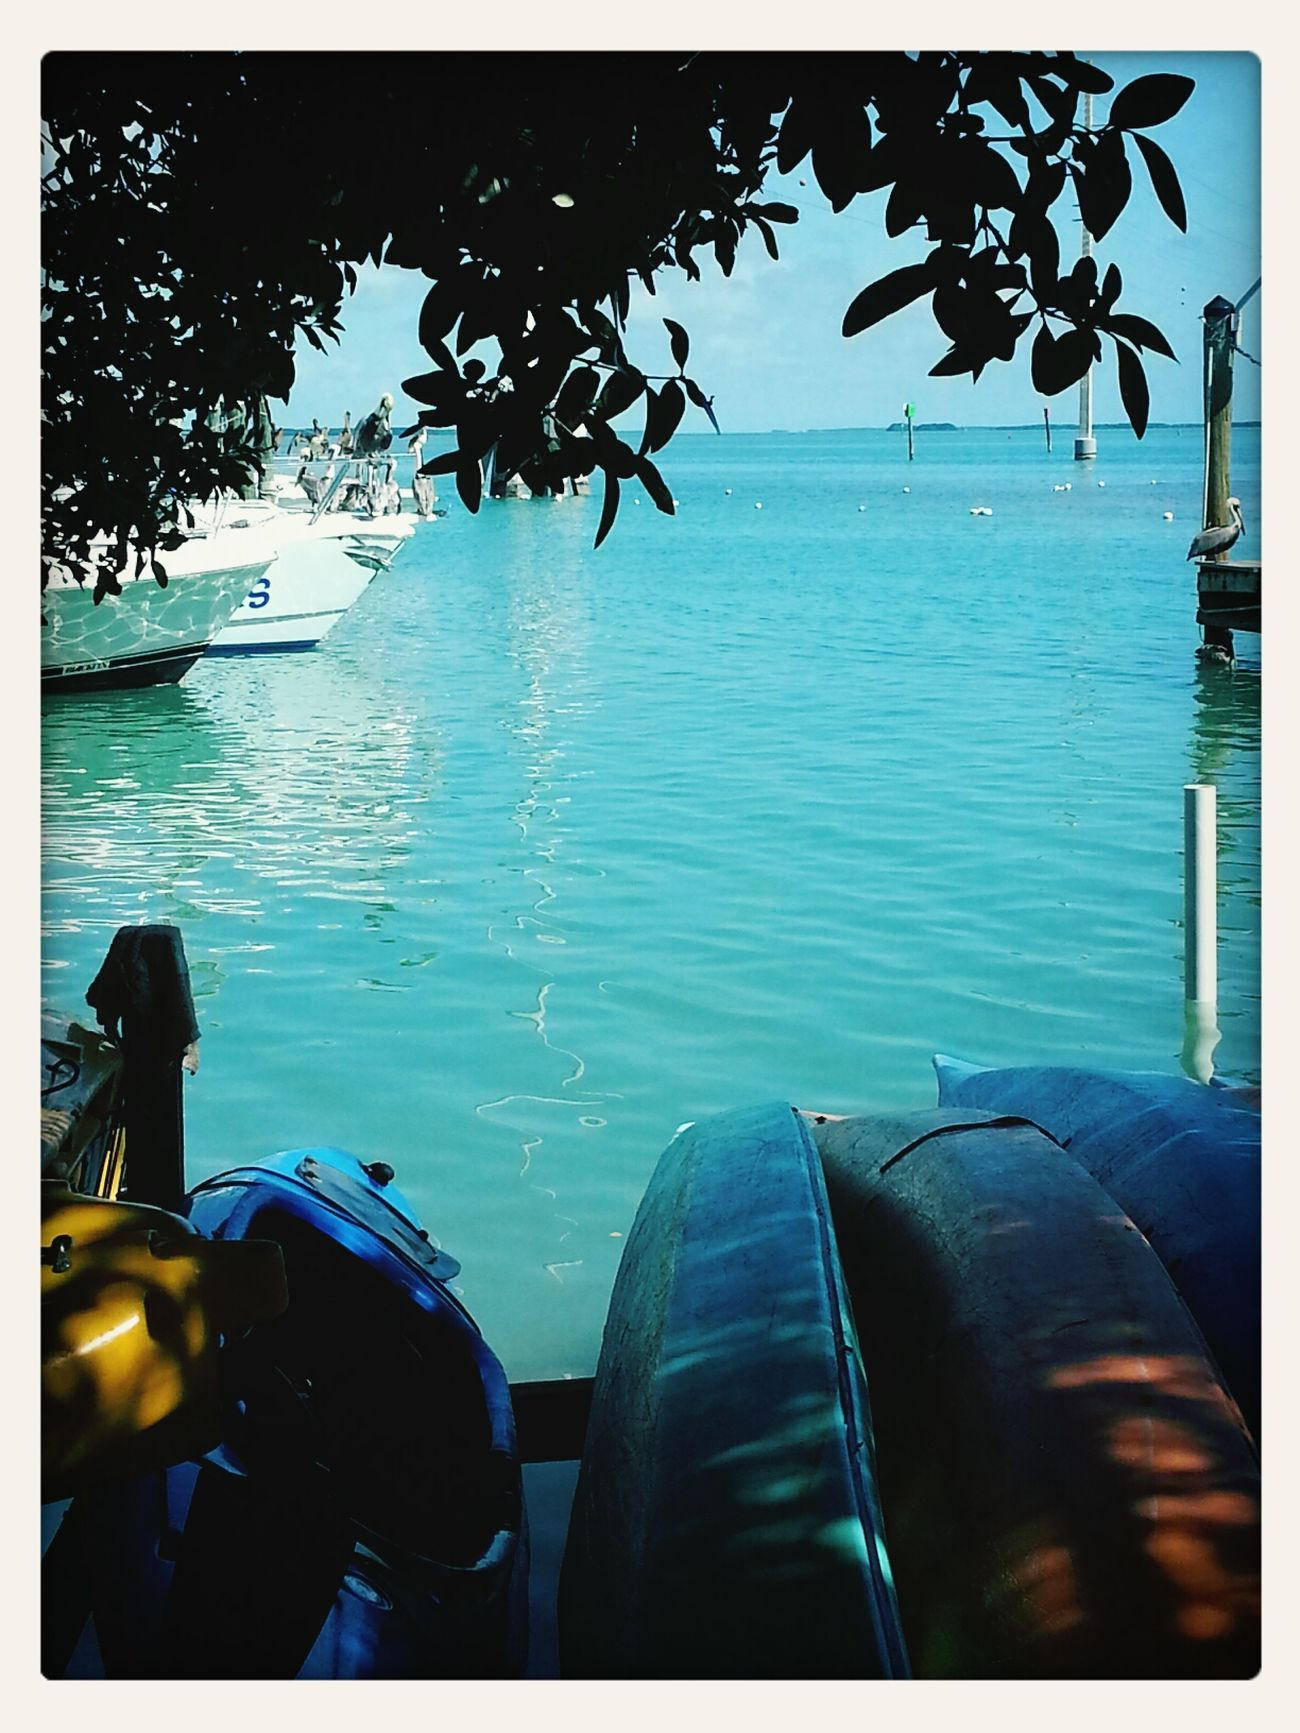 view from work. Robbies Marina Happy Cat Snorkel Boat Islamorada Florida Keys